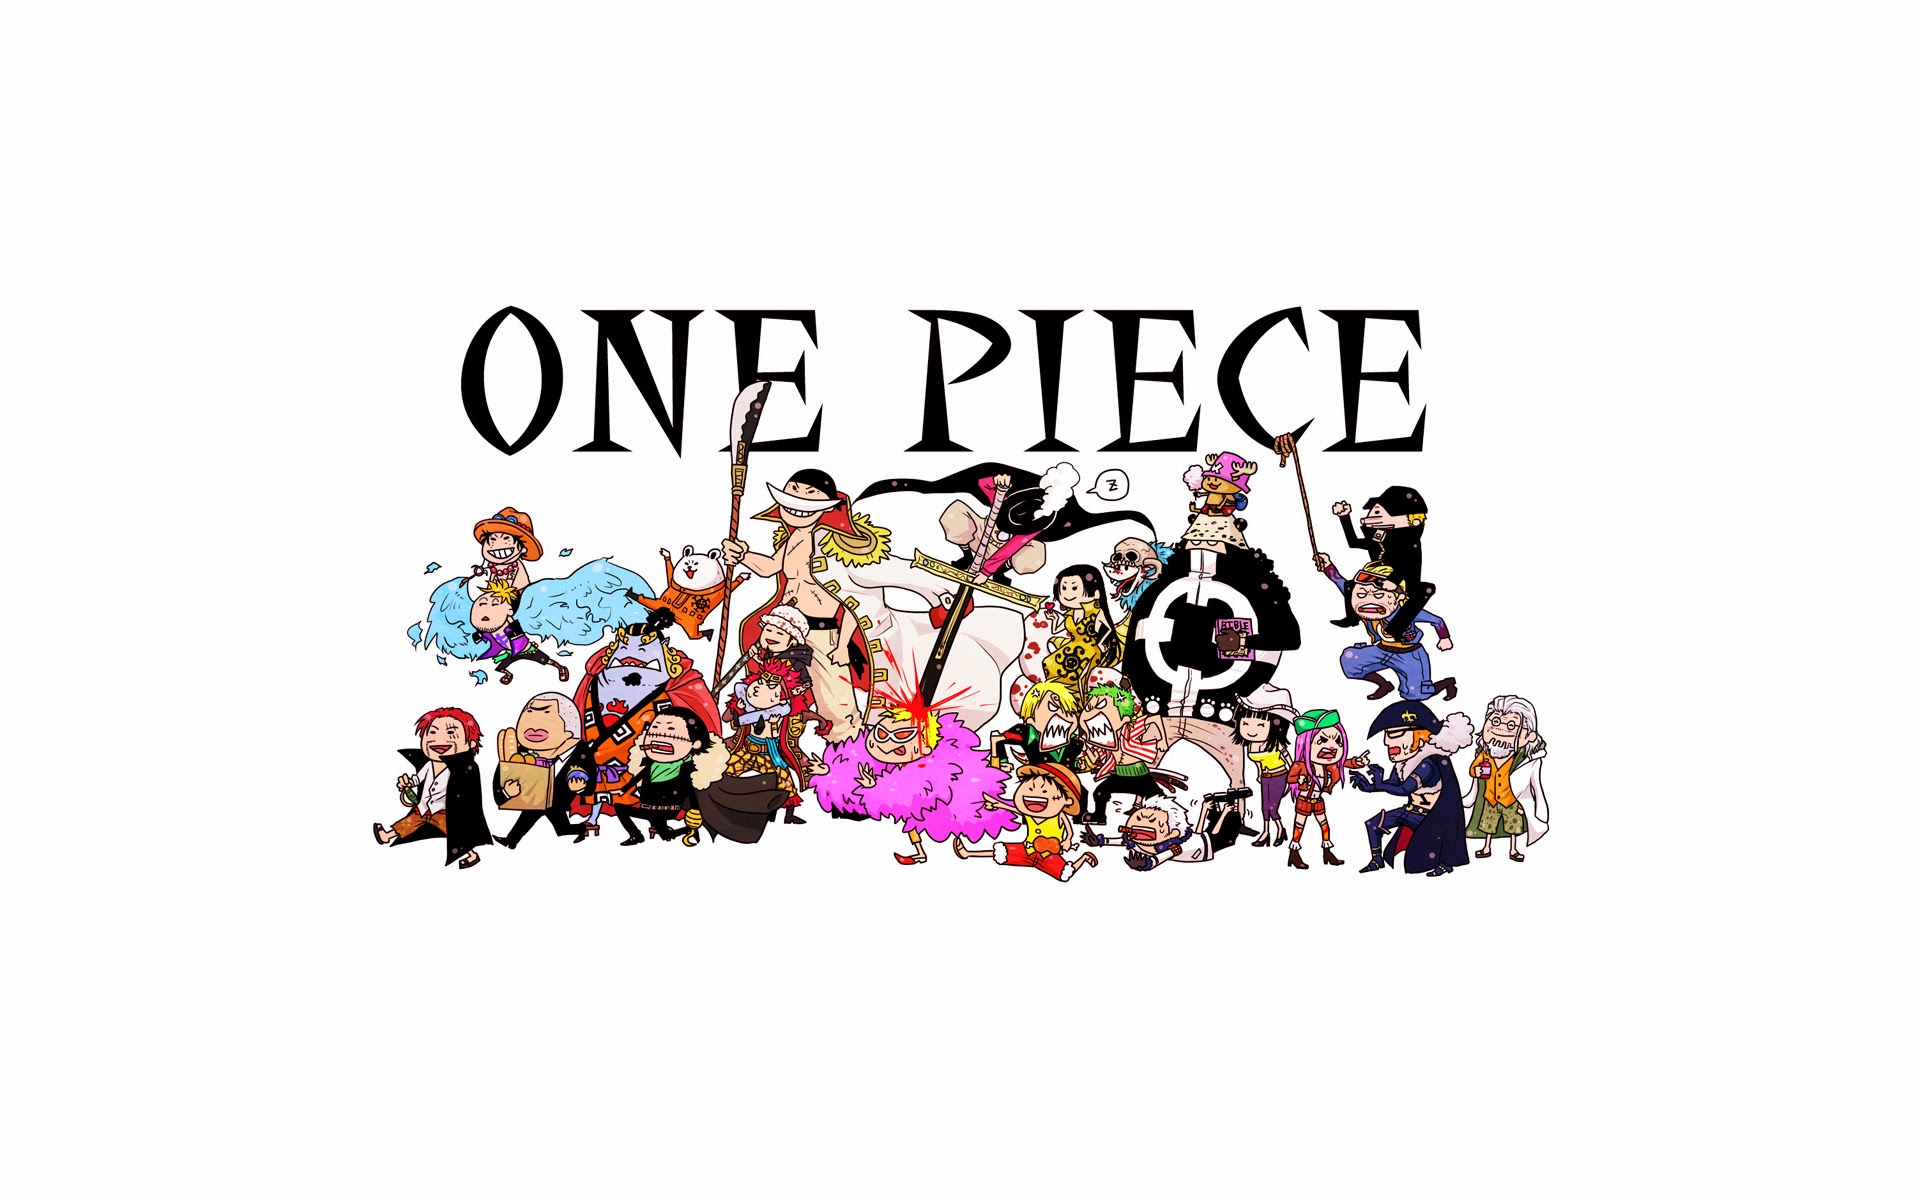 one piece anime chibi hd wallpaper 1920x1200 2g 1920x1200